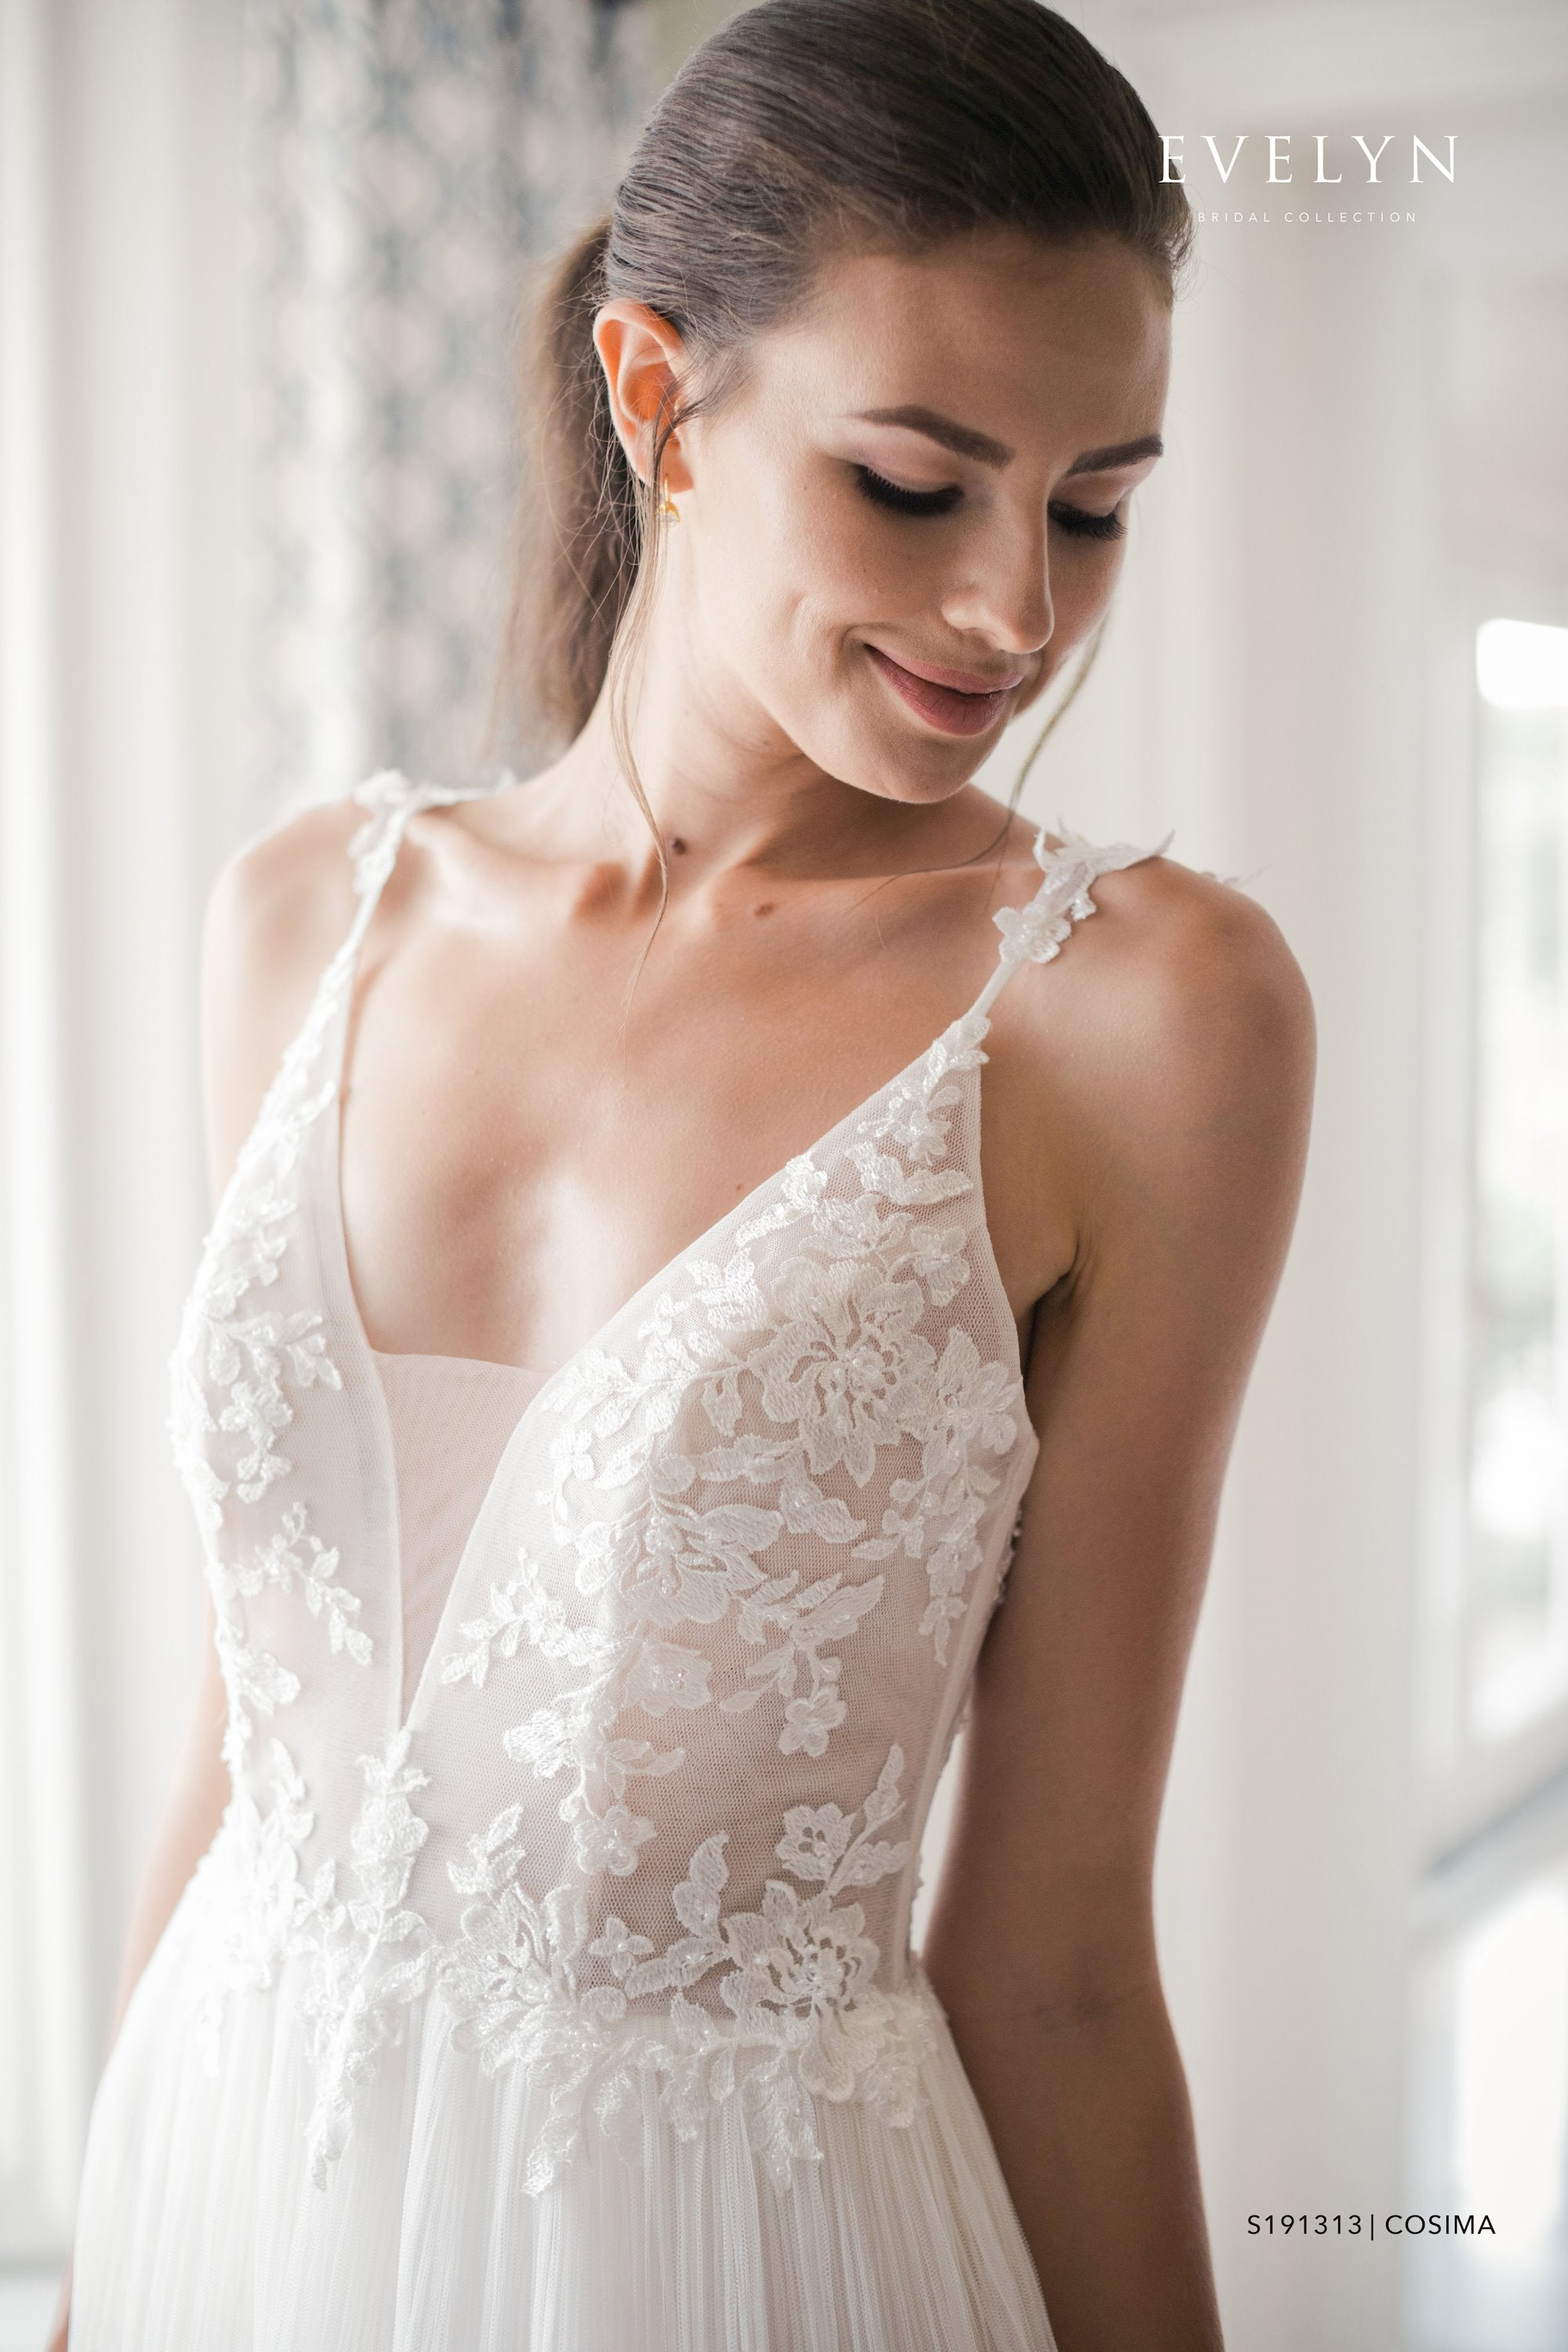 Evelyn Bridal Cosima